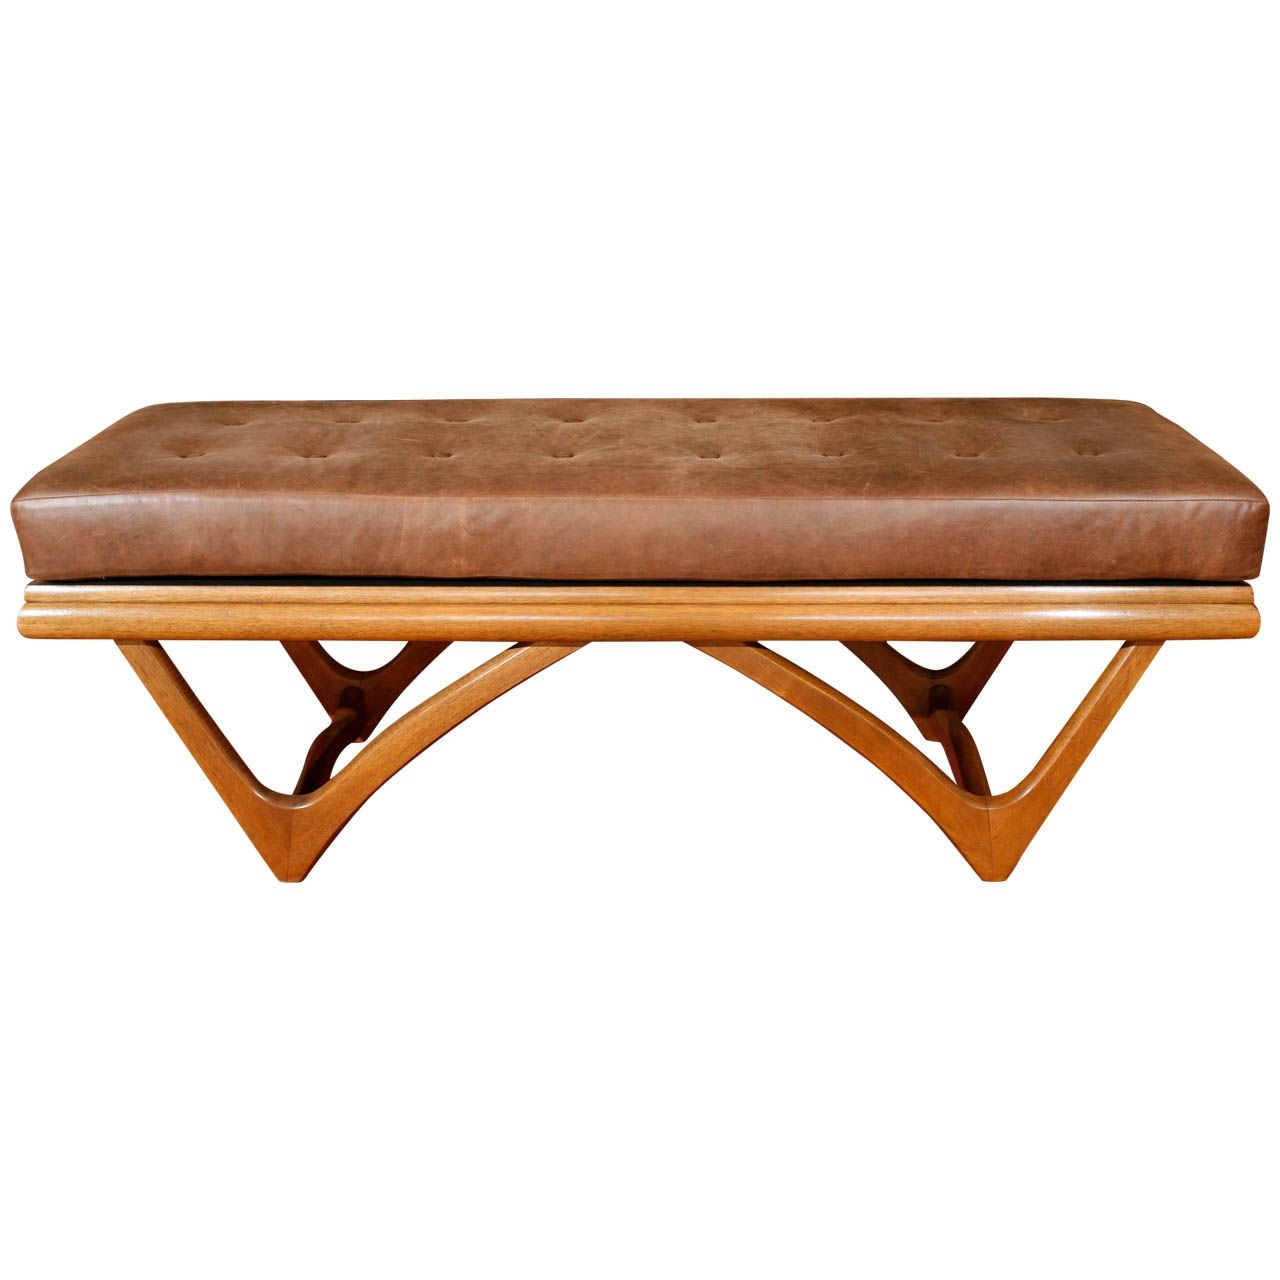 Leather Tufted Bowtie Bench Adrian Pearsall